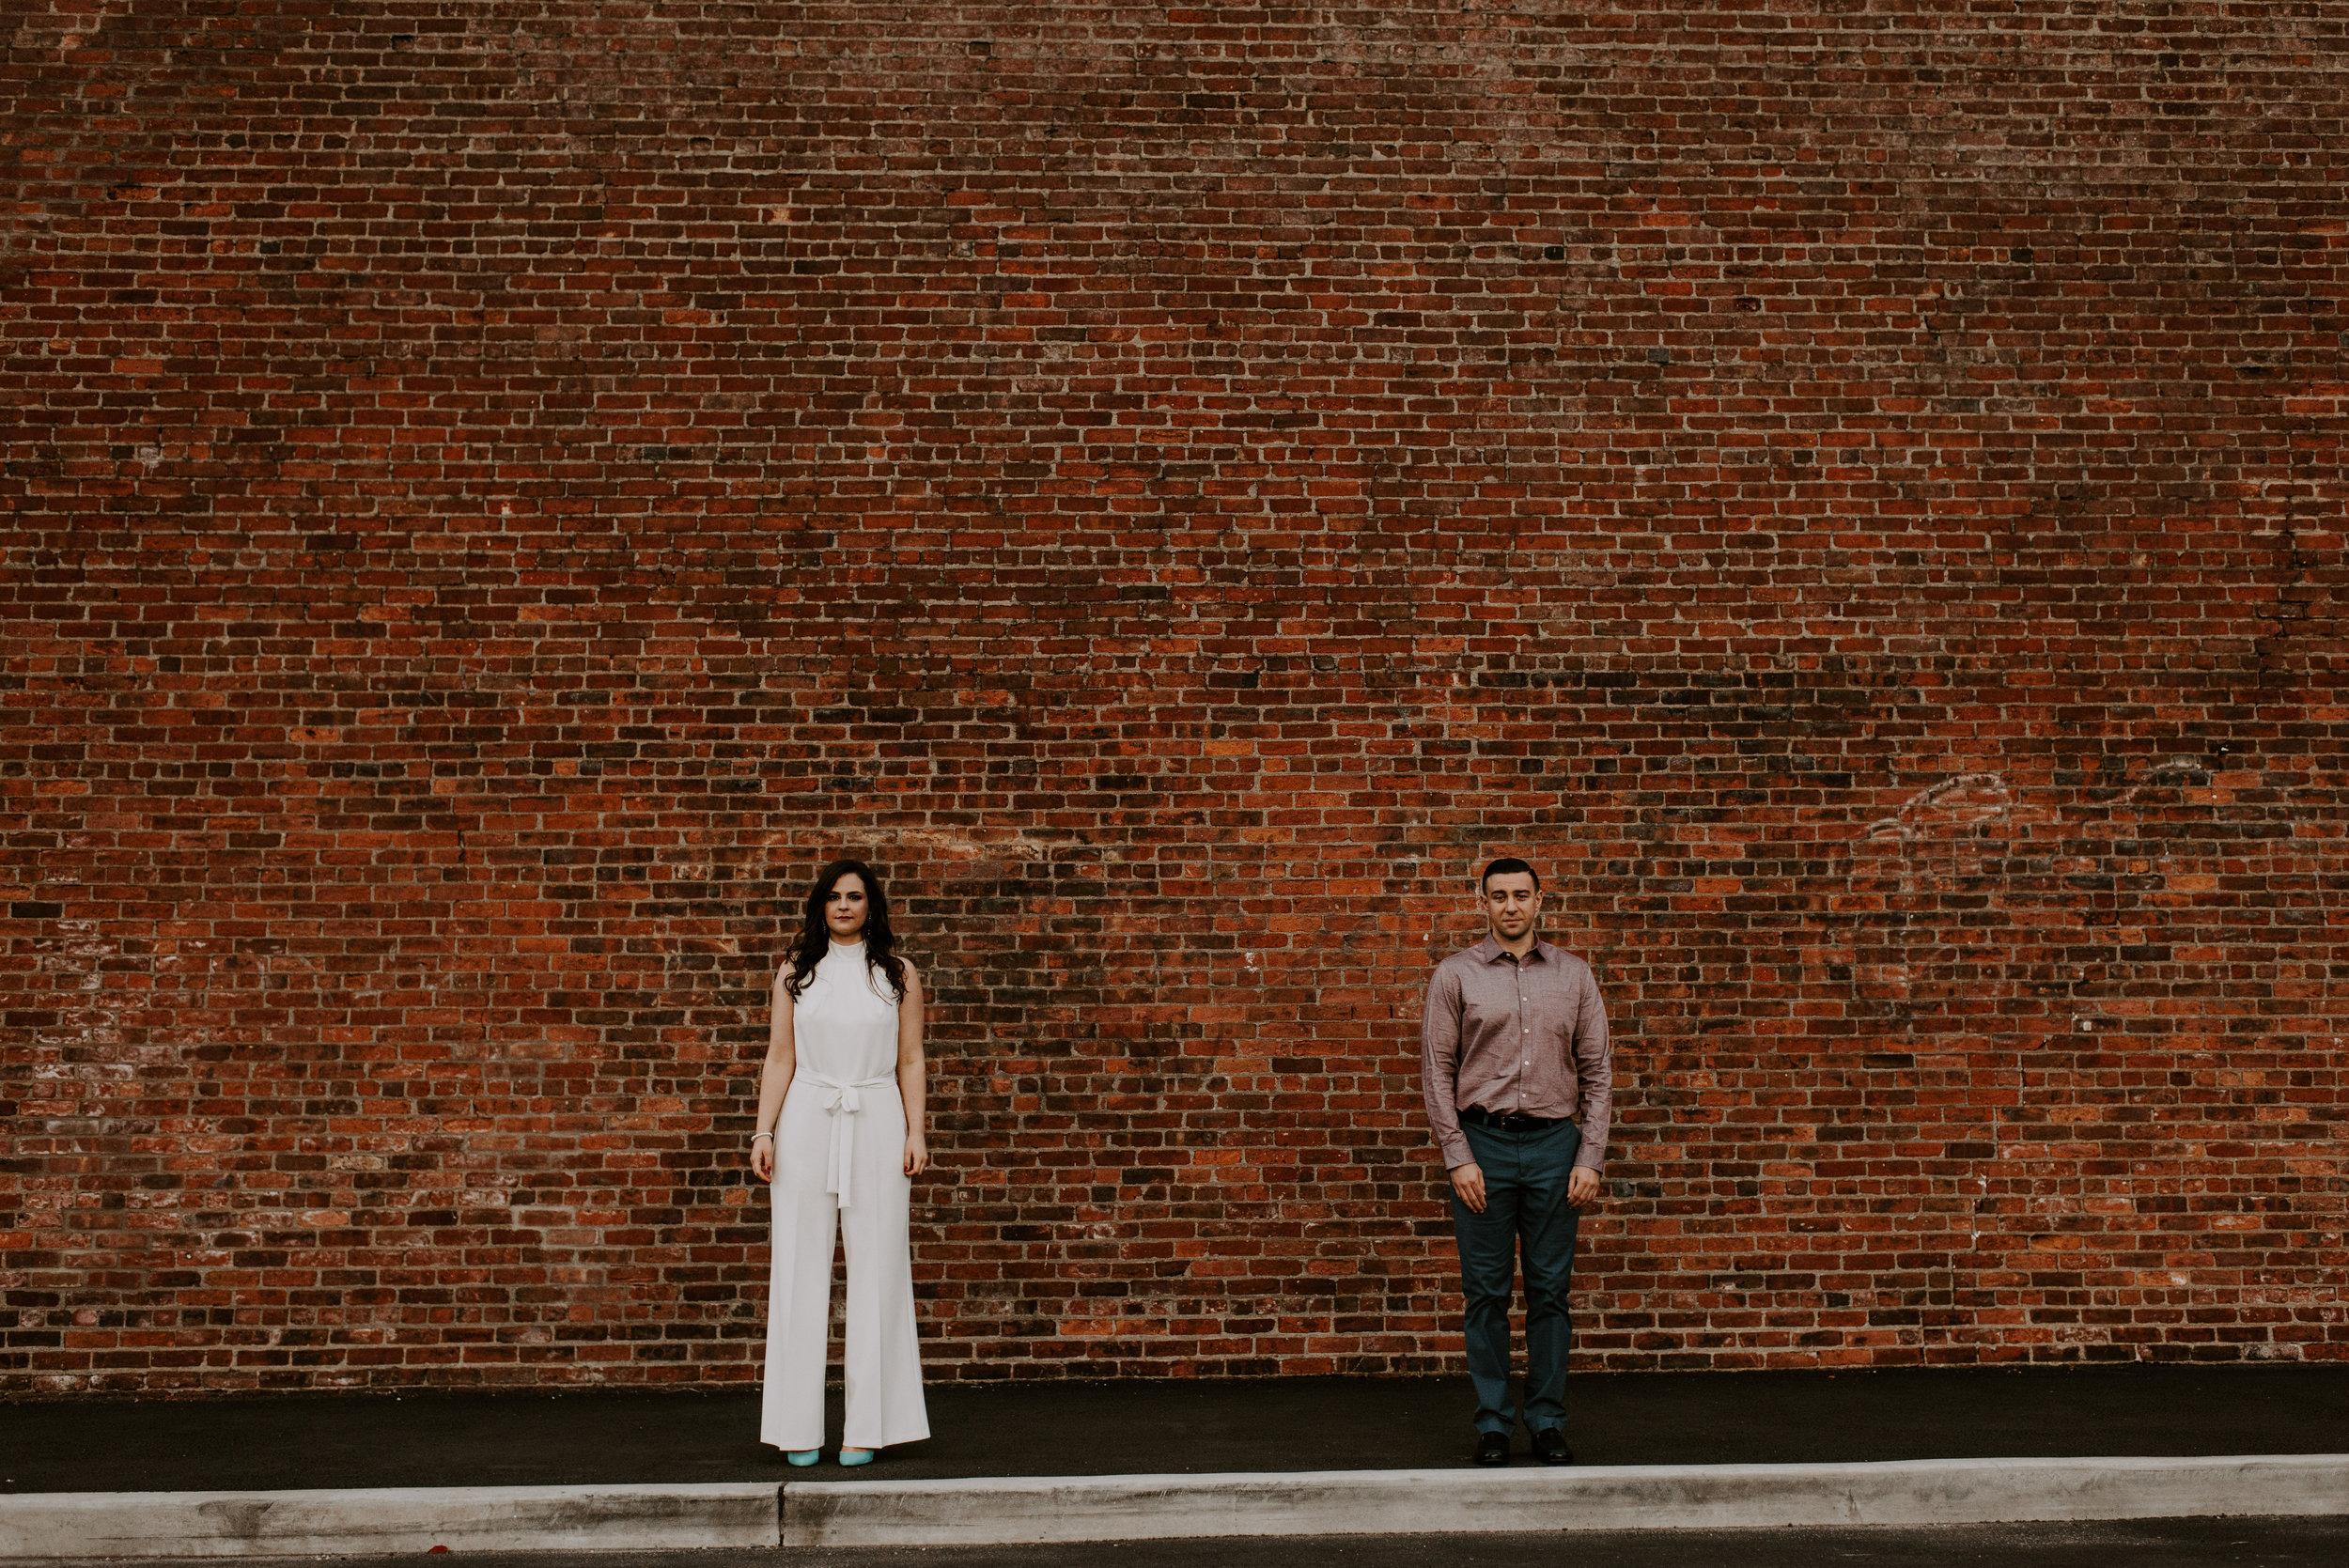 Moody Fall Brooklyn Engagement Session | Brooklyn Wedding Photographer | Madeline Rose Photography Co.